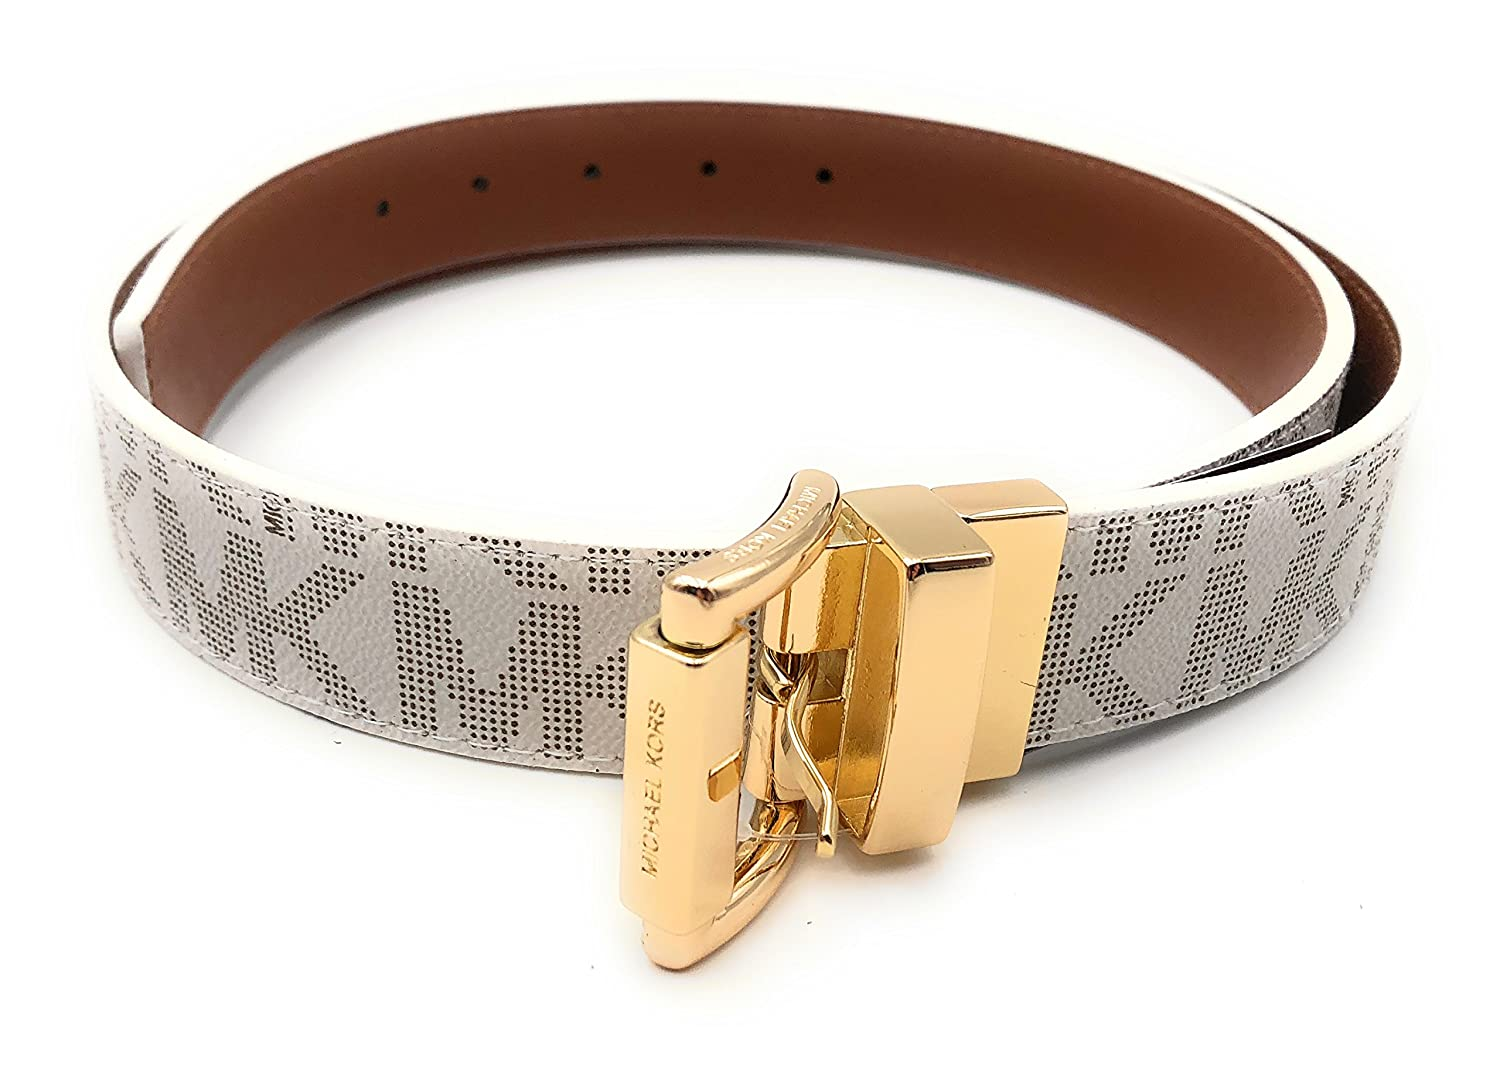 1a294175fda7 Michael Kors Women s Monogram Belt and Gold Buckle Brown White Reversible  Large at Amazon Women s Clothing store